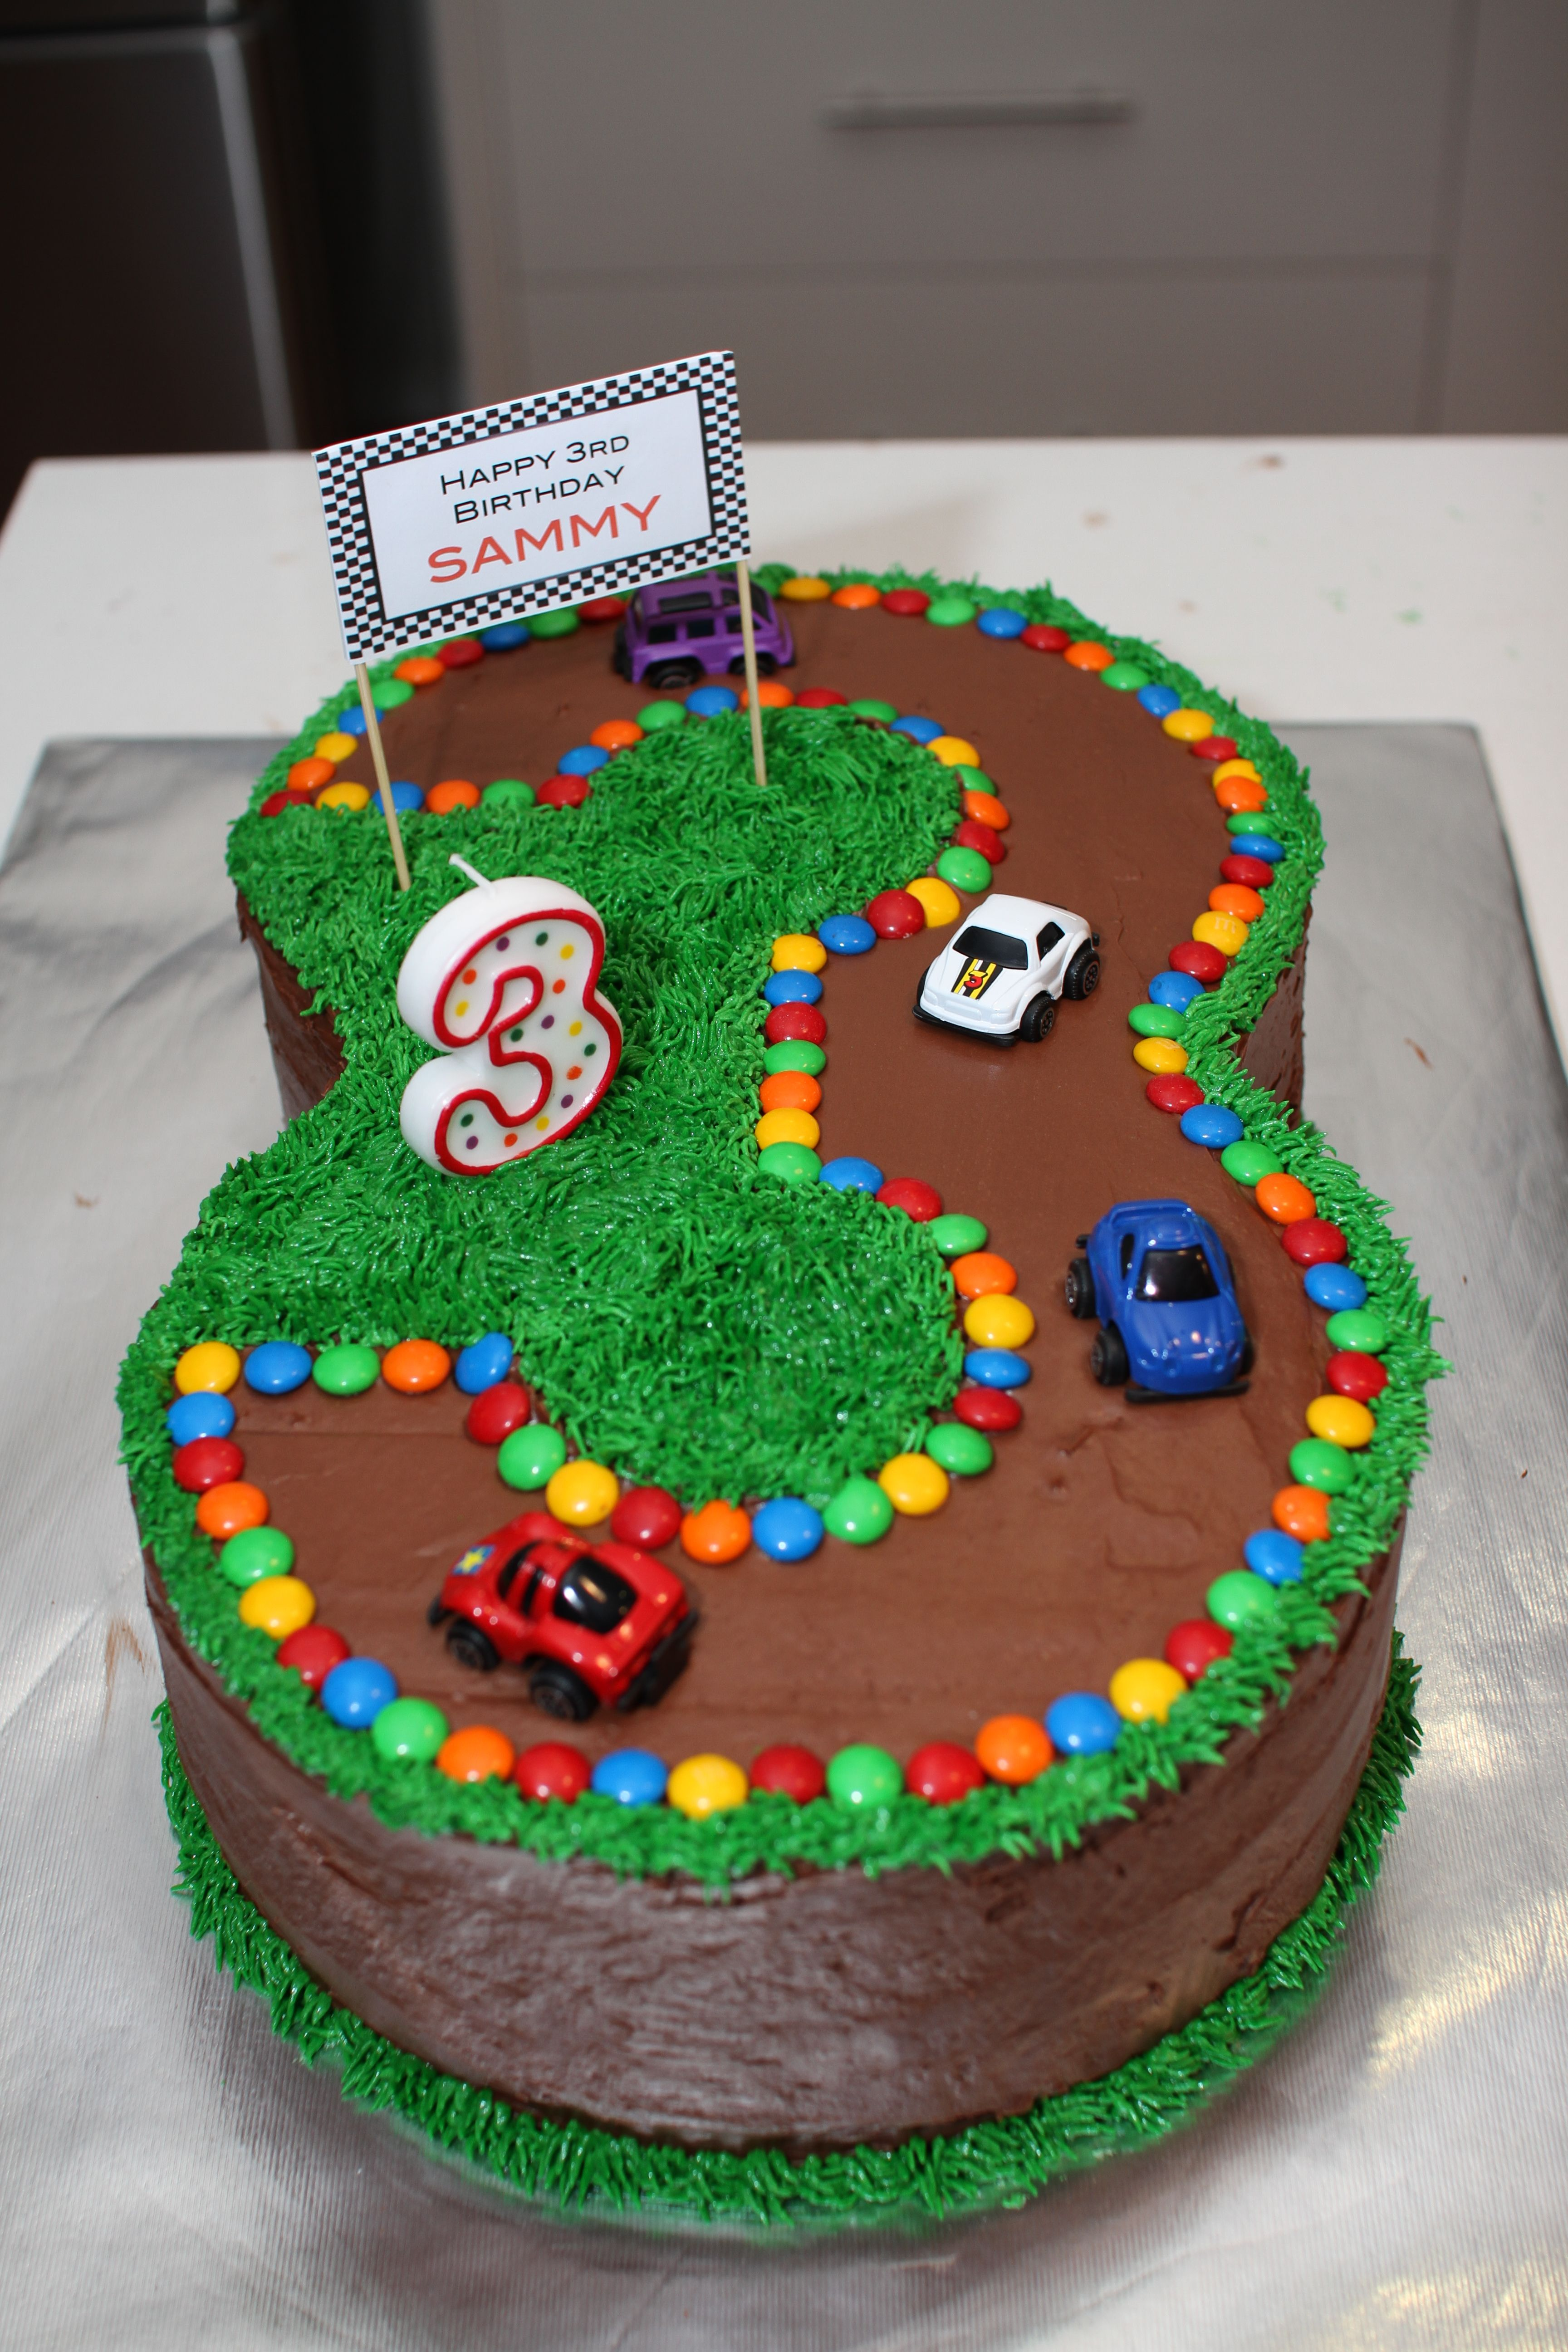 No 3 Race Track Cake For 3rd Birthday